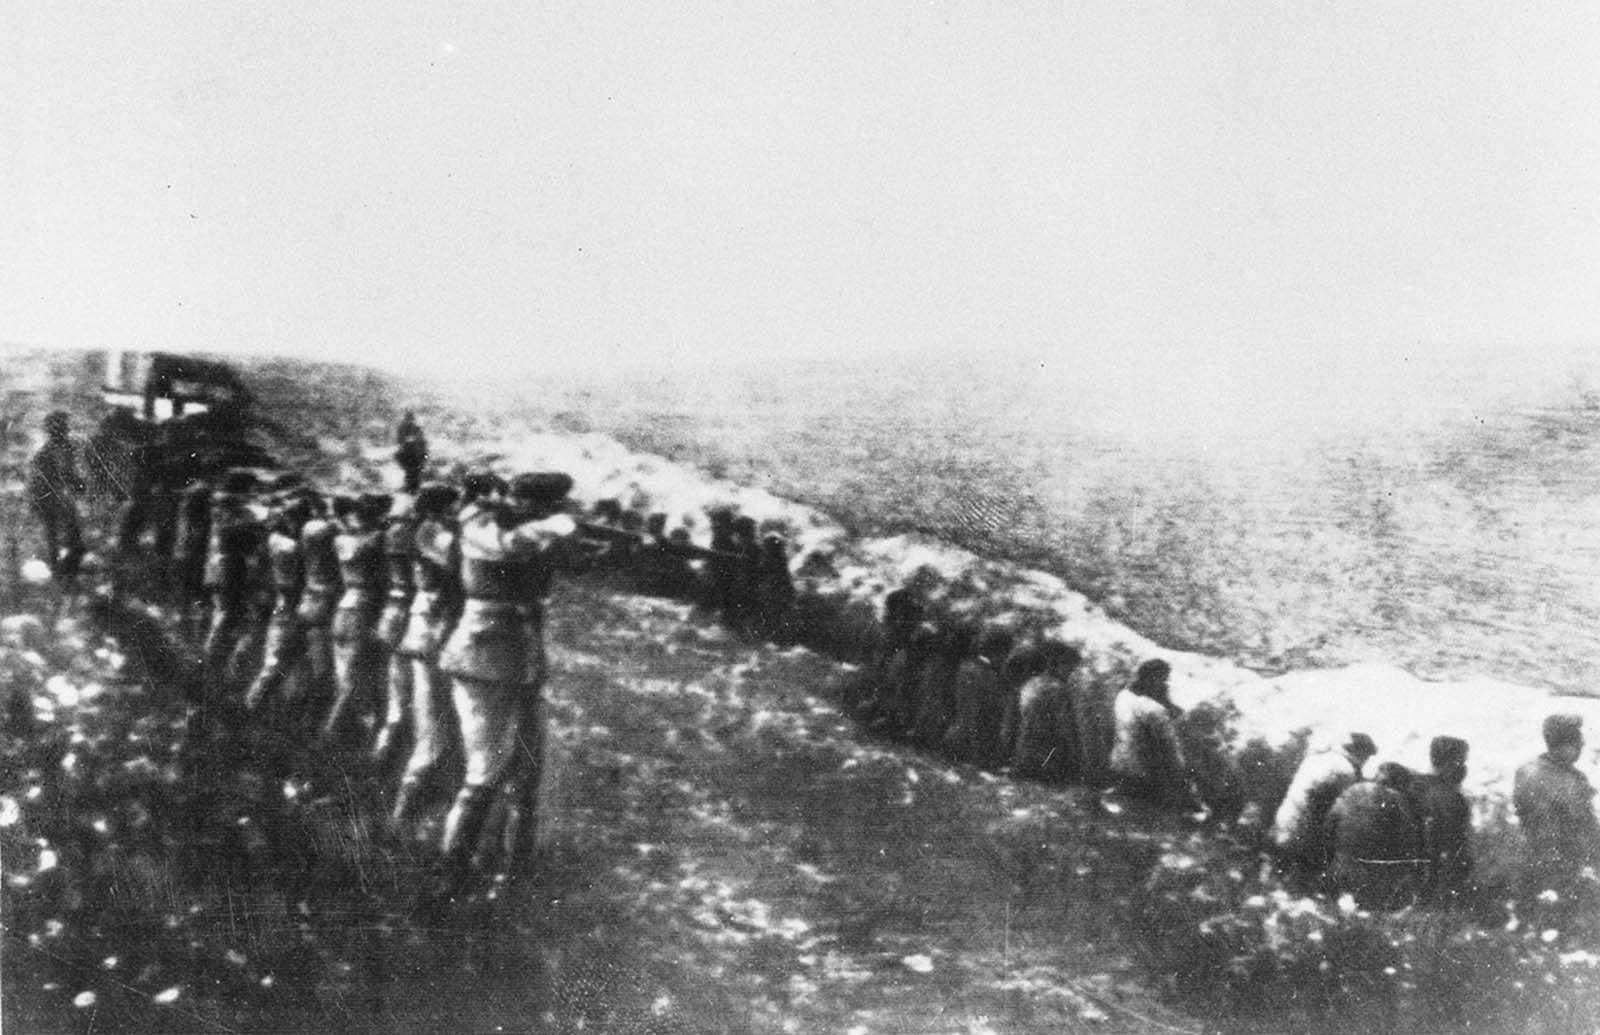 This photo was taken from a the body of a dead Germany officer killed in Russia, showing a German firing squad shooting Soviet civilians in the back as they sit beside their own mass grave in Babi Yar, an infamous ravine in the Ukrainian capital of Kiev, in 1942. Between 1941 and 1942, an estimated 100,000 to 150,000 Jews, Soviet prisoners, communists, gypsies, Ukrainian nationalists and civilians were executed by the Germans in Babi Yar.